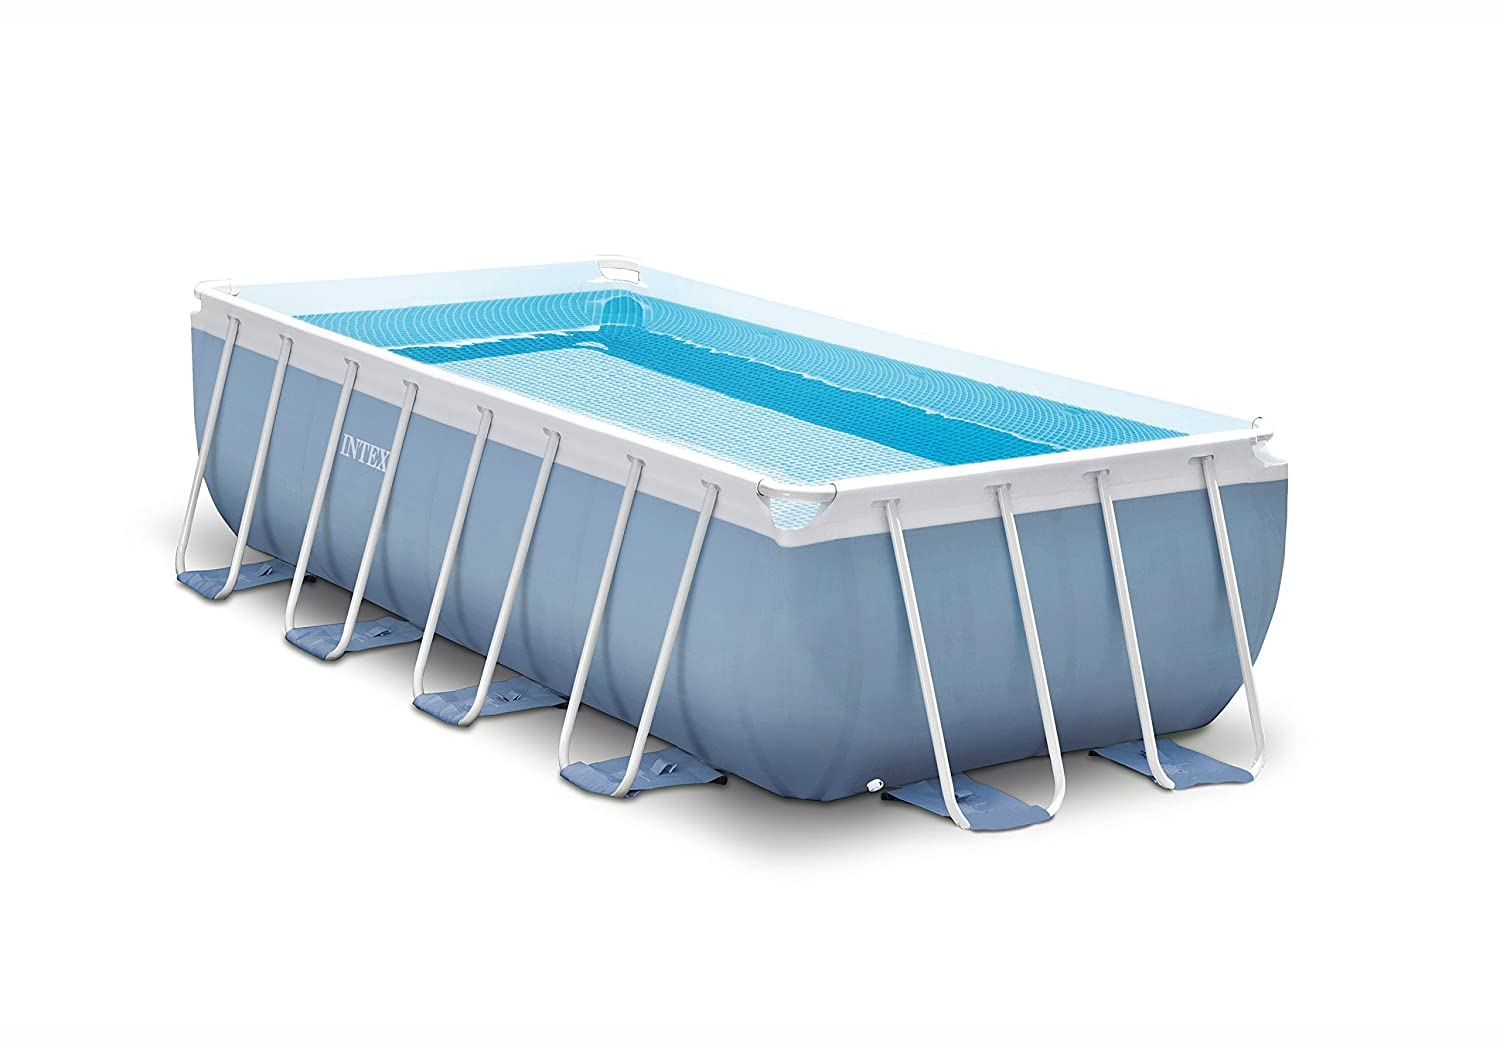 amazon com intex 16ft x 8ft x 42in rectangular prism frame pool